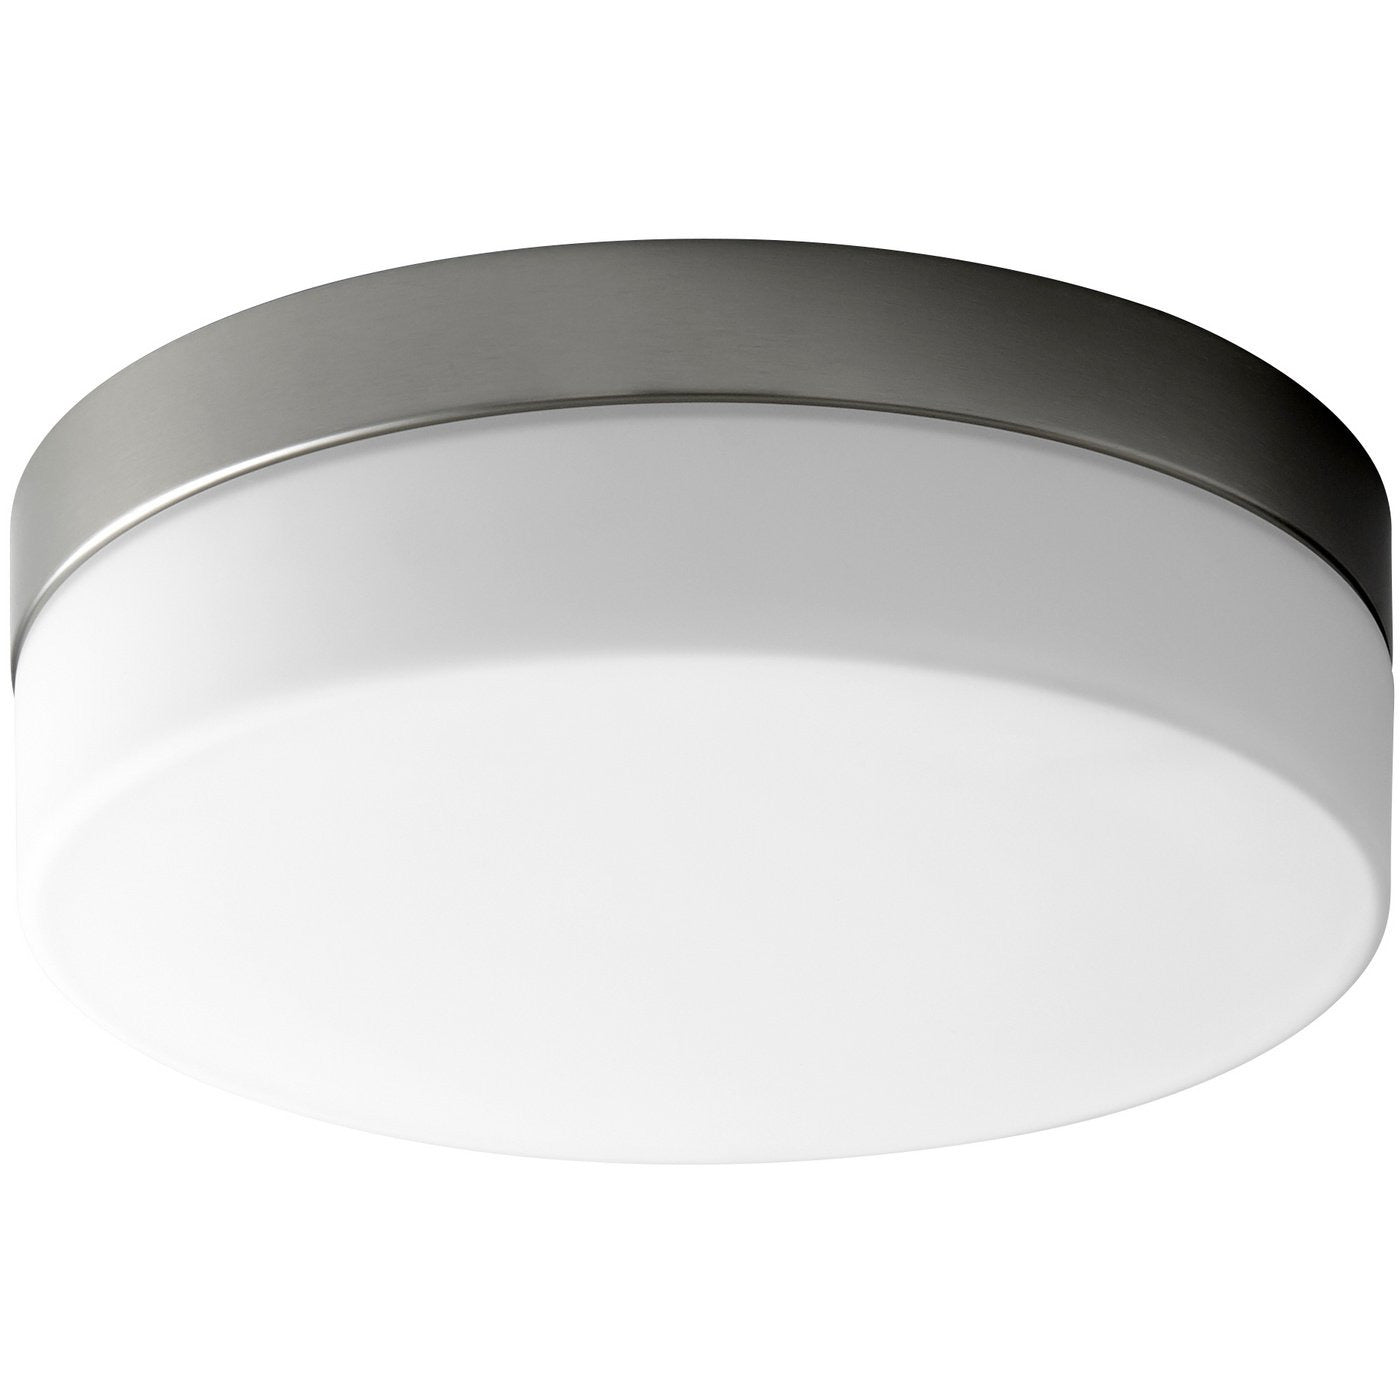 Oxygen - 32-631-24 - LED Ceiling Mount - Zuri - Satin Nickel